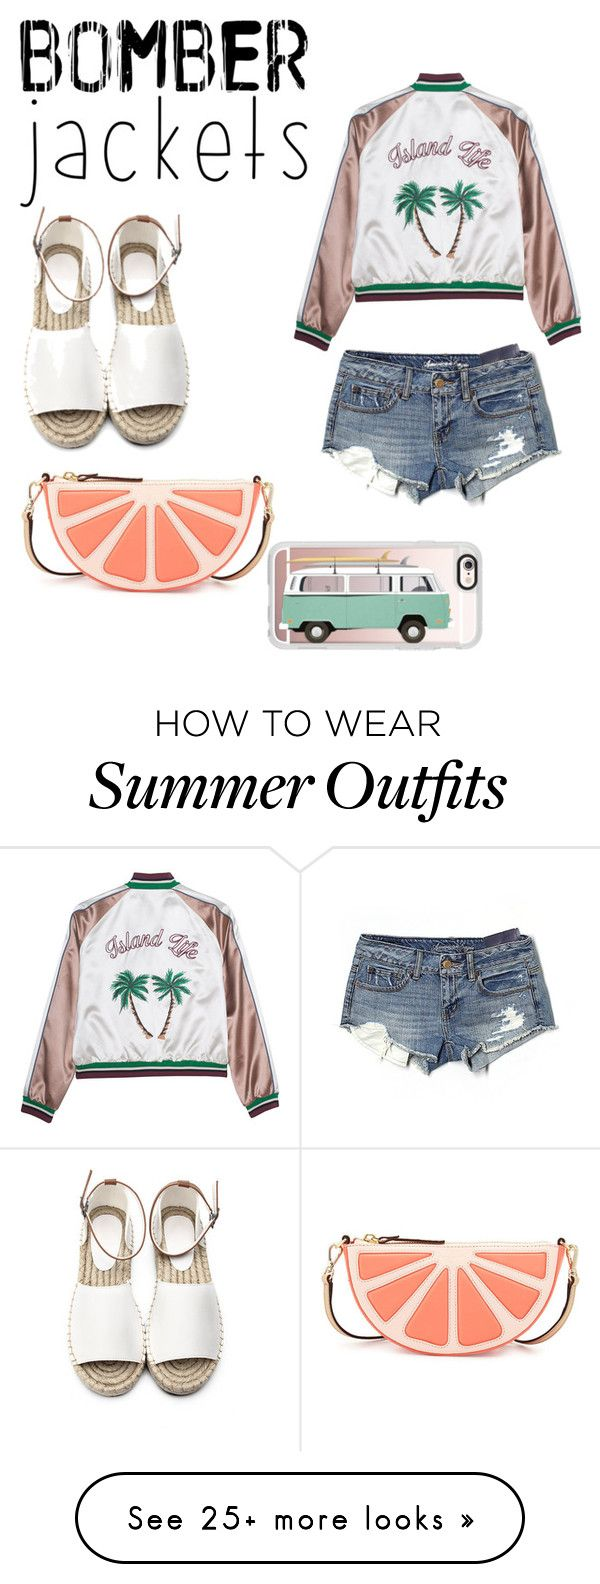 """Bomber jackets"" by kaylieq on Polyvore featuring American Eagle Outfitters, Kate Spade, Casetify and bomberjackets"